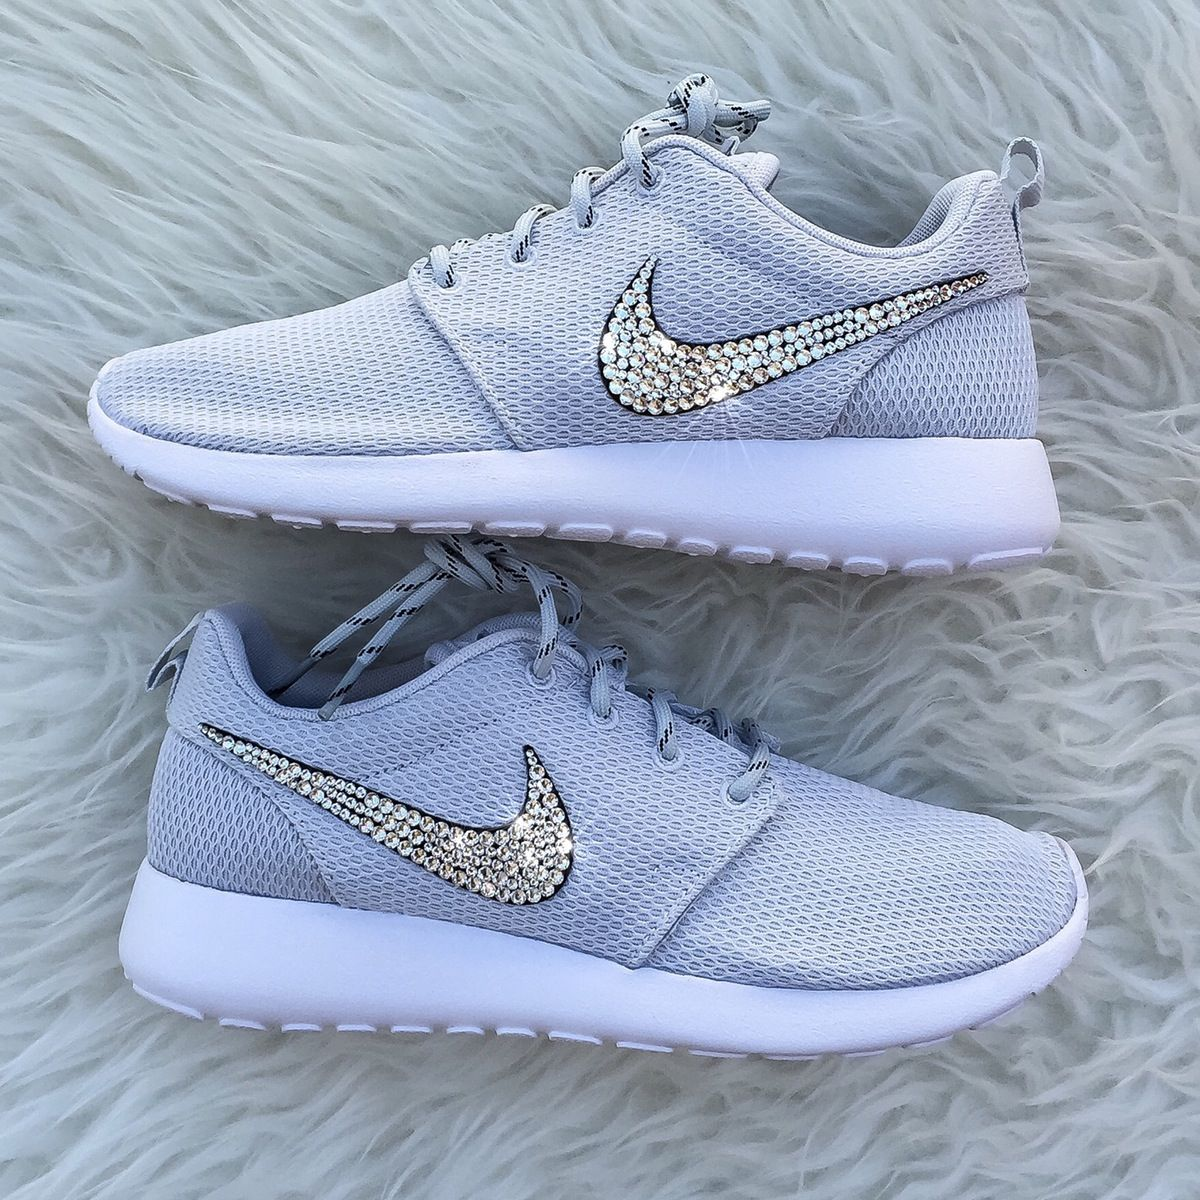 452c0272ba911 Nike Roshe with Swarovski Rhinestones.  NIKE ROSHES TEND TO RUN TRUE TO SIZE   - Crystals on outside Nike swoosh only - Due to the fact ev.